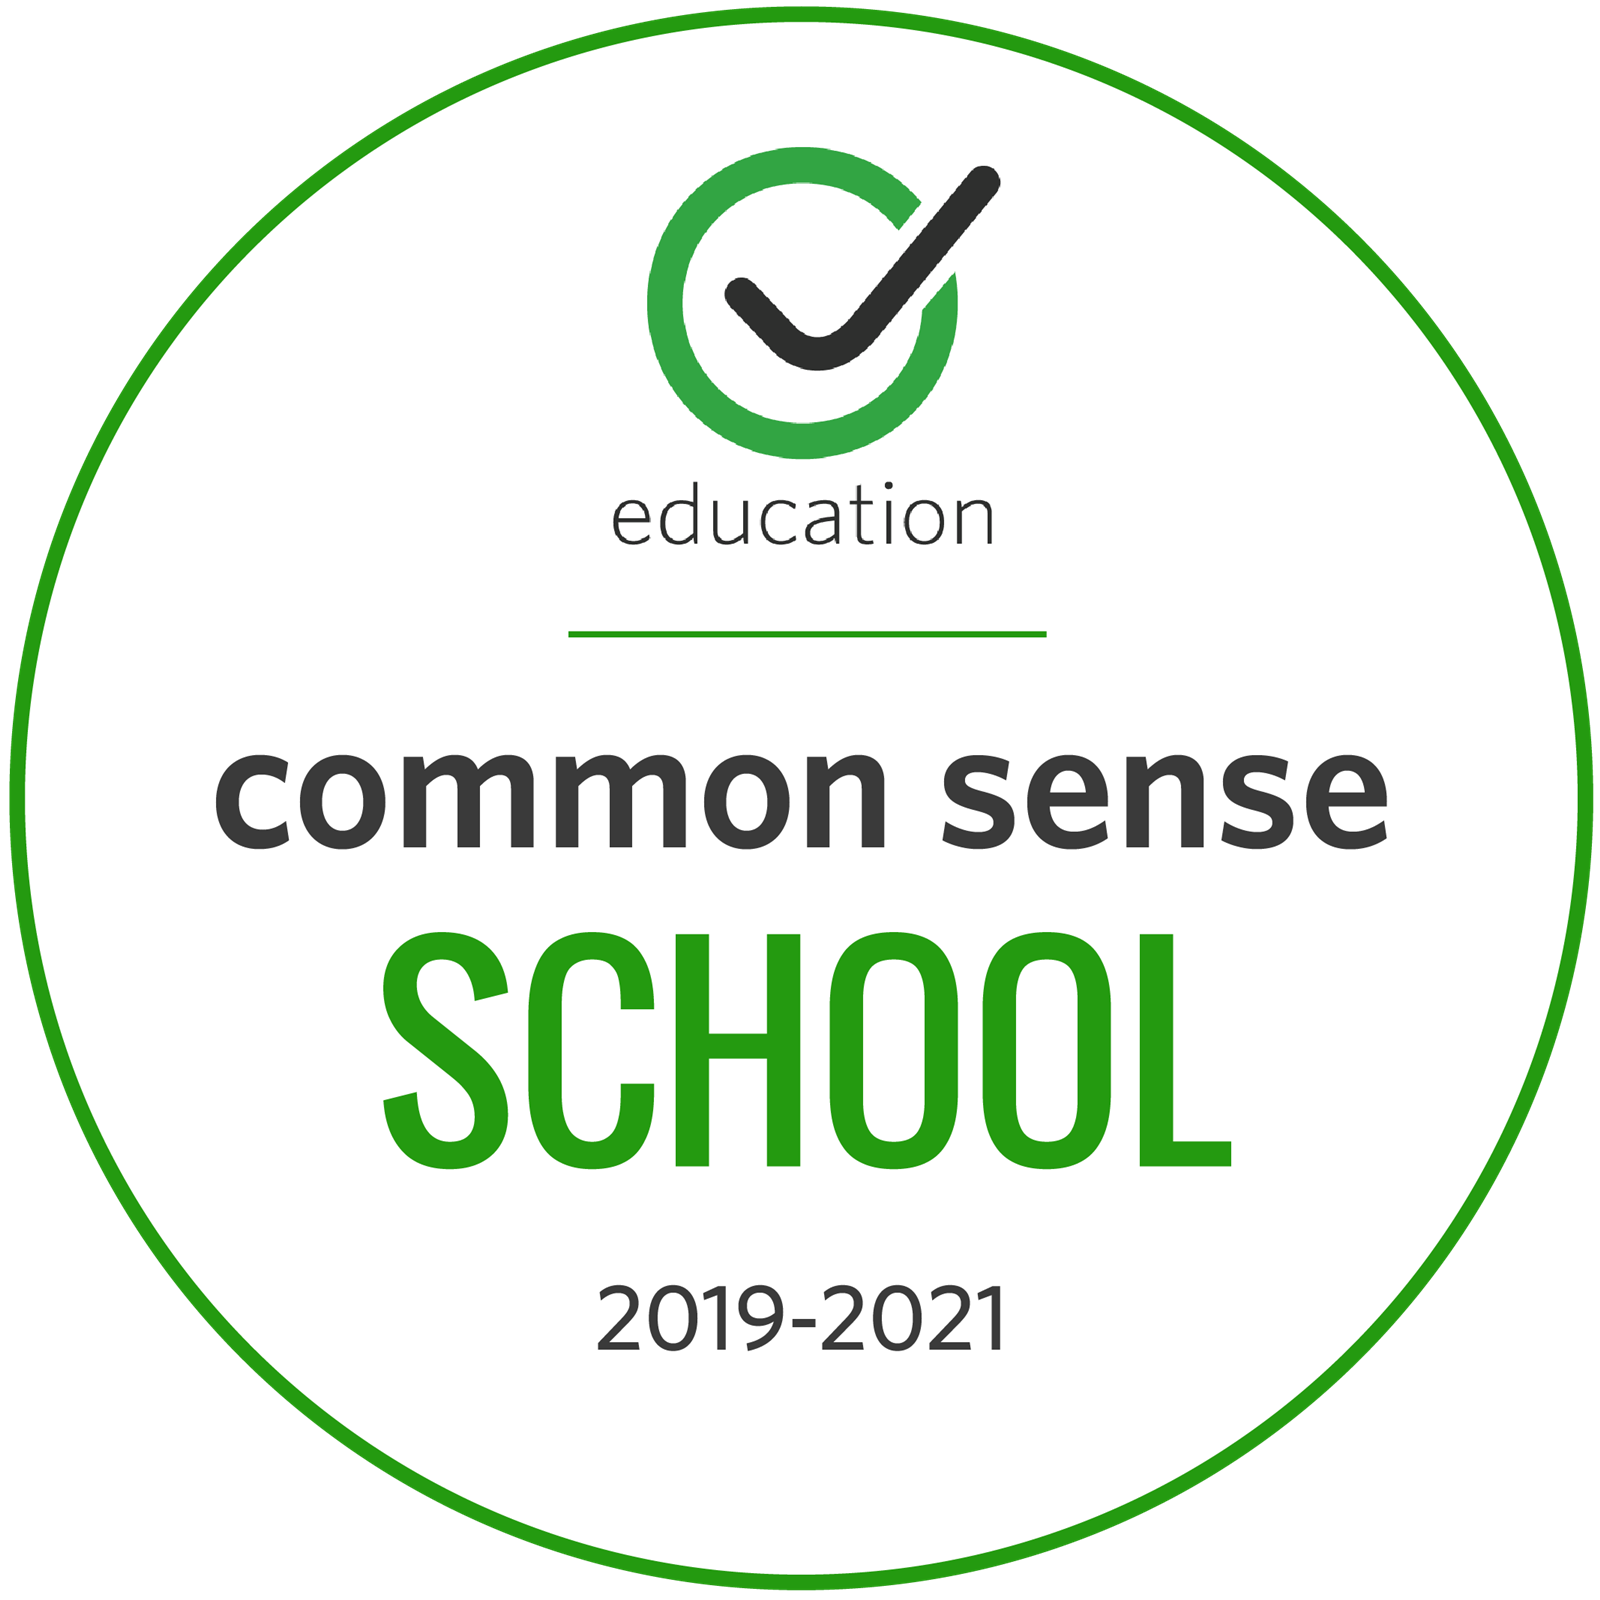 Centennial High School Earned Designation as Common Sense School 2019-2021